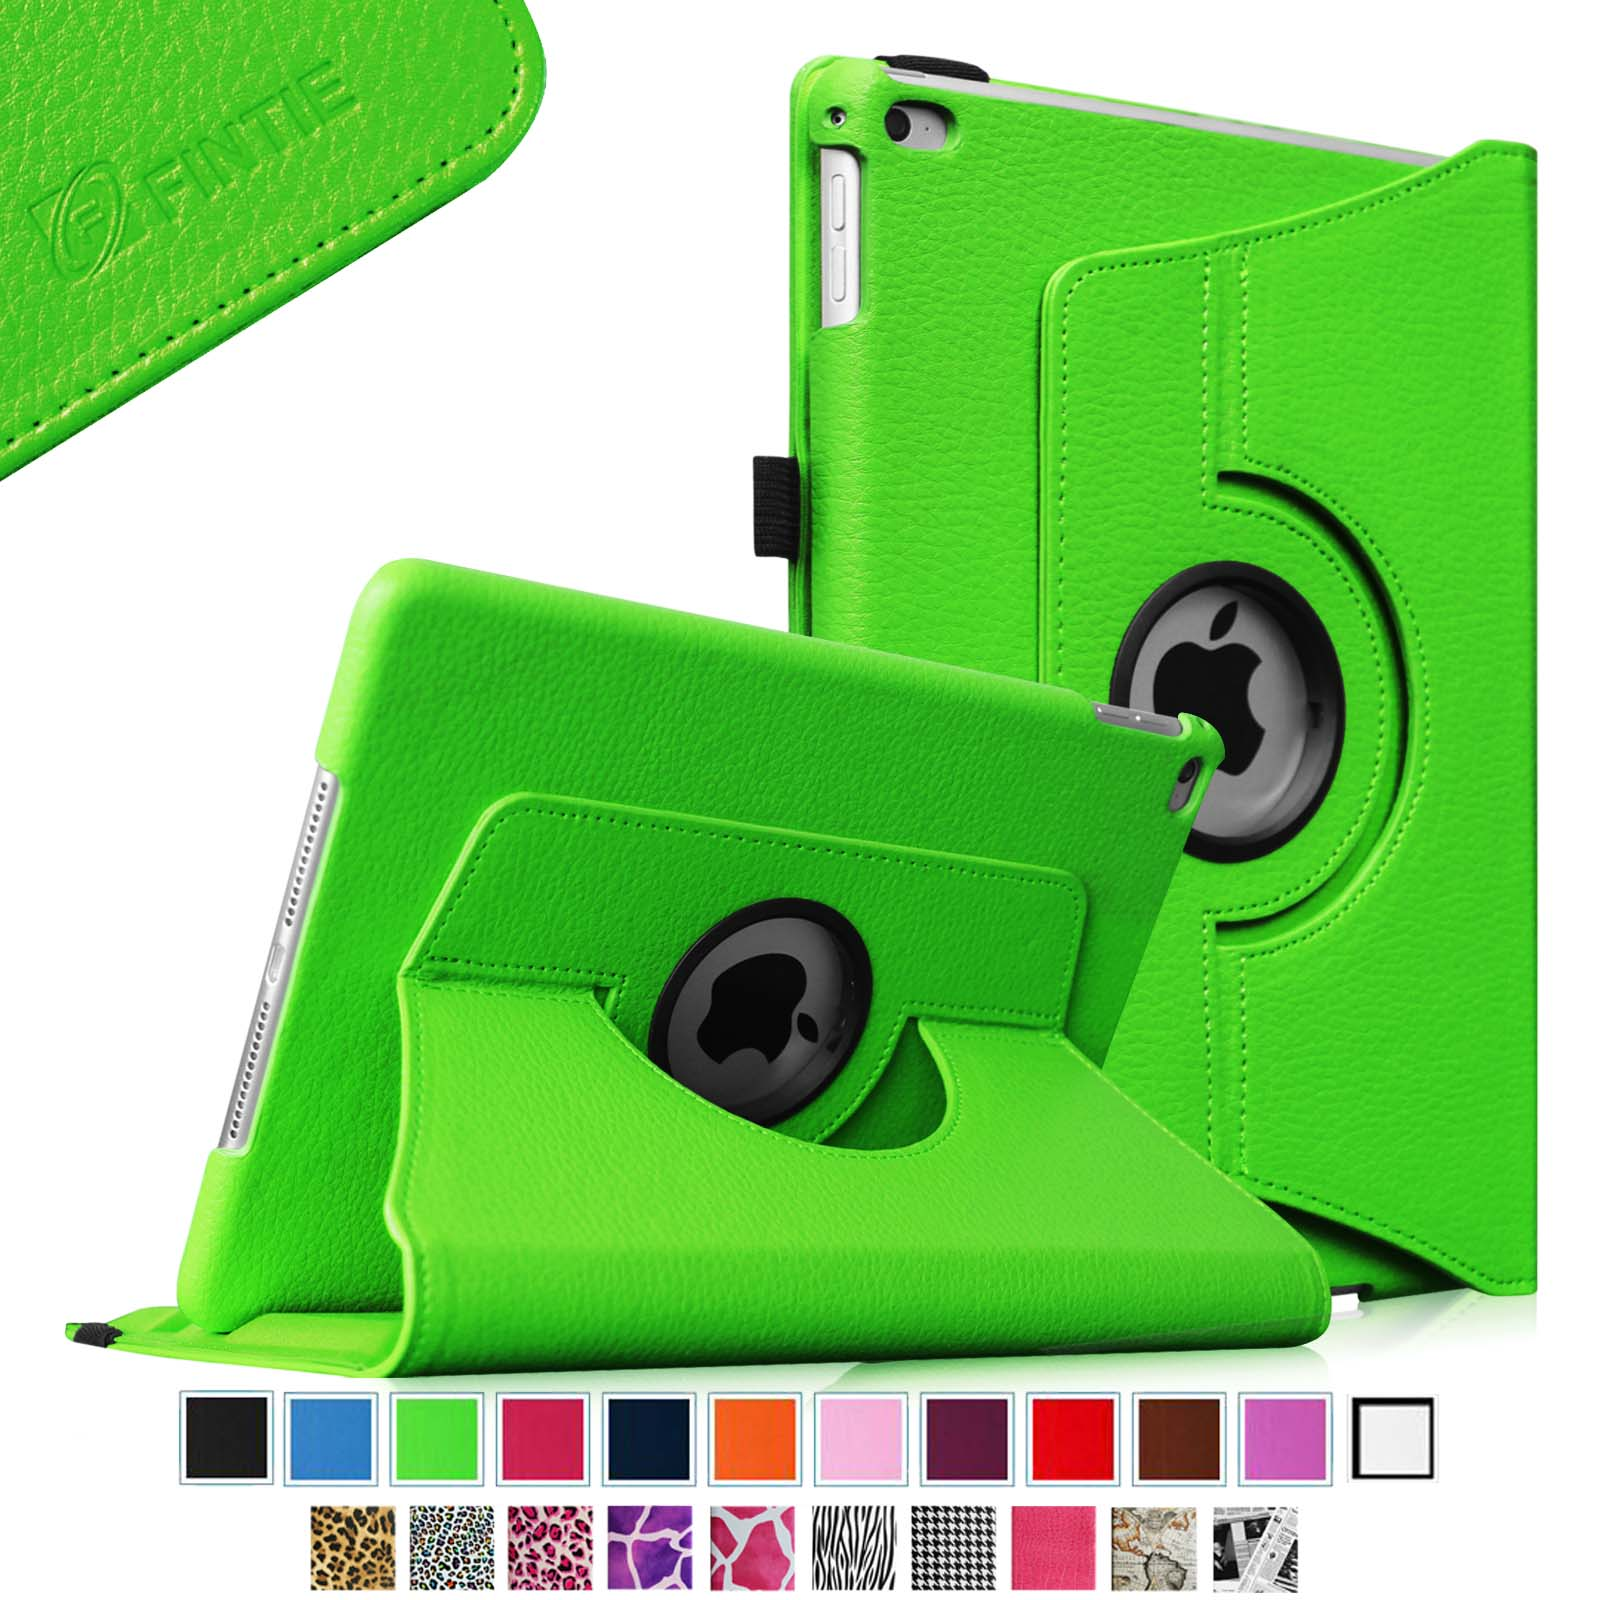 Fintie iPad Air 2 Case - 360 Degree Rotating Stand Case with Smart Cover Auto Sleep / Wake Feature, Green